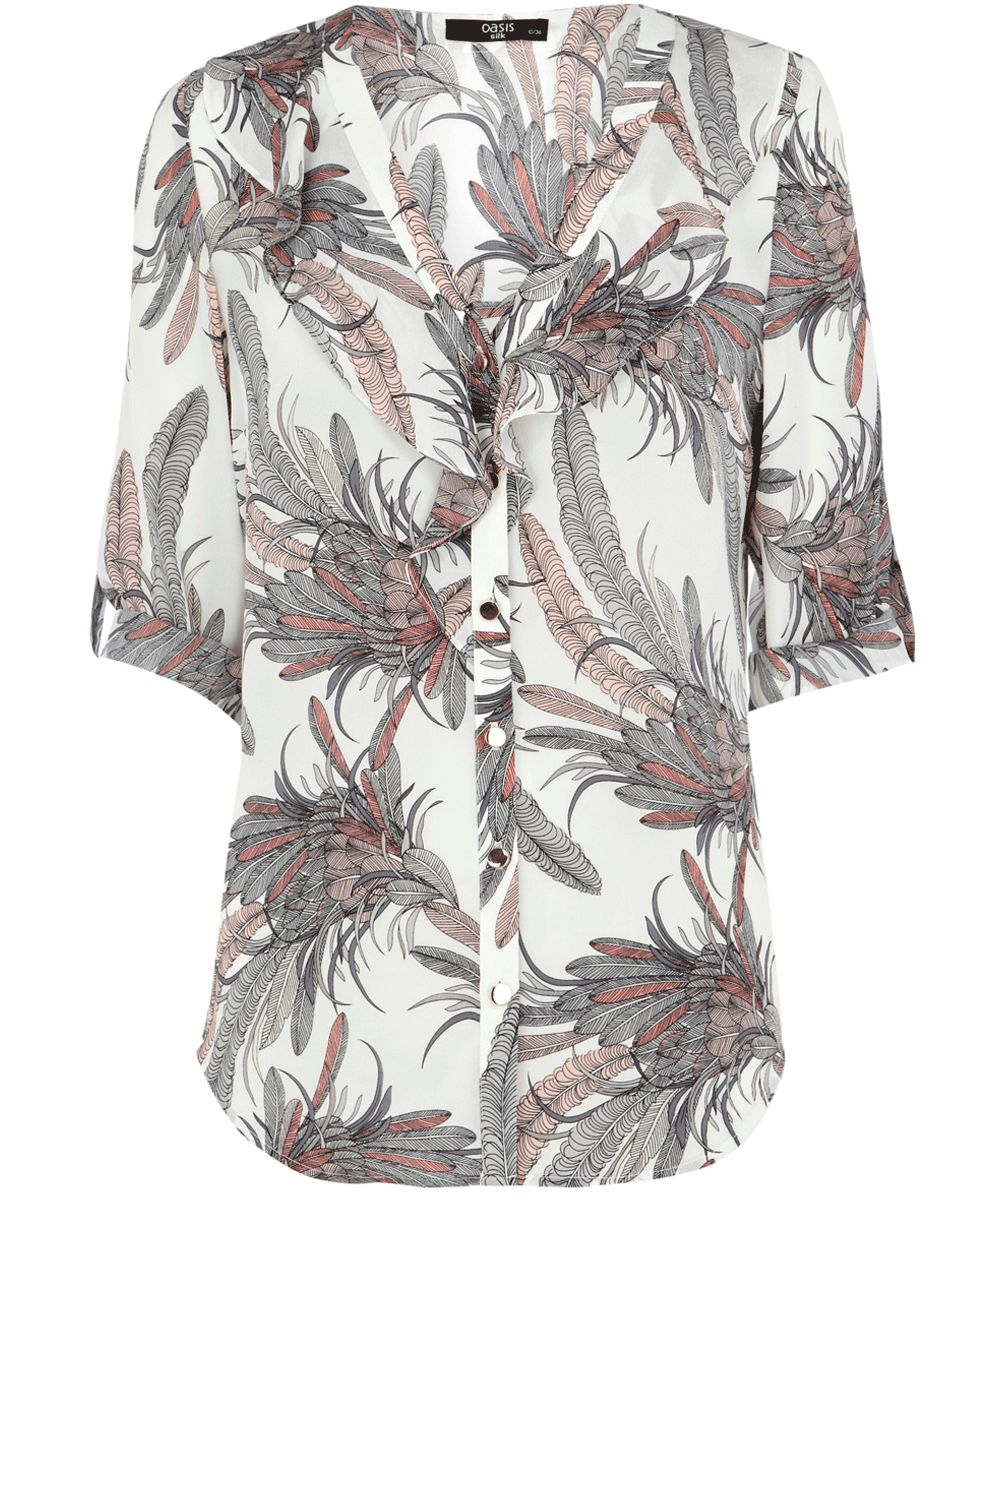 Oasis Womens Oasis Silk feather frill blouse, product image